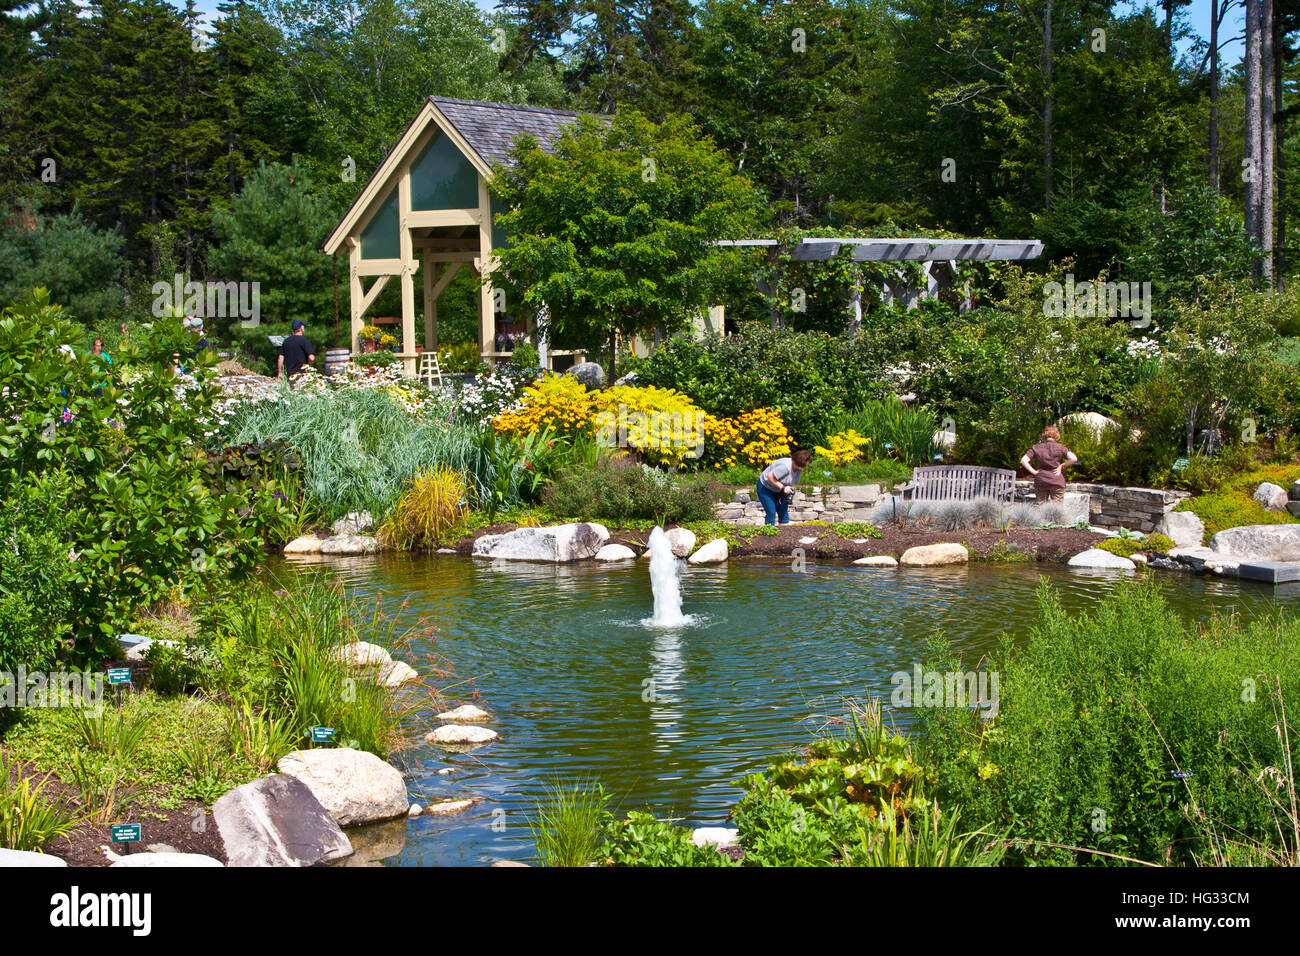 Coastal Maine Botanical Gardens, Boothbay, Maine, A Garden Featuring Plants  And Flowers Of New England And Sculpture